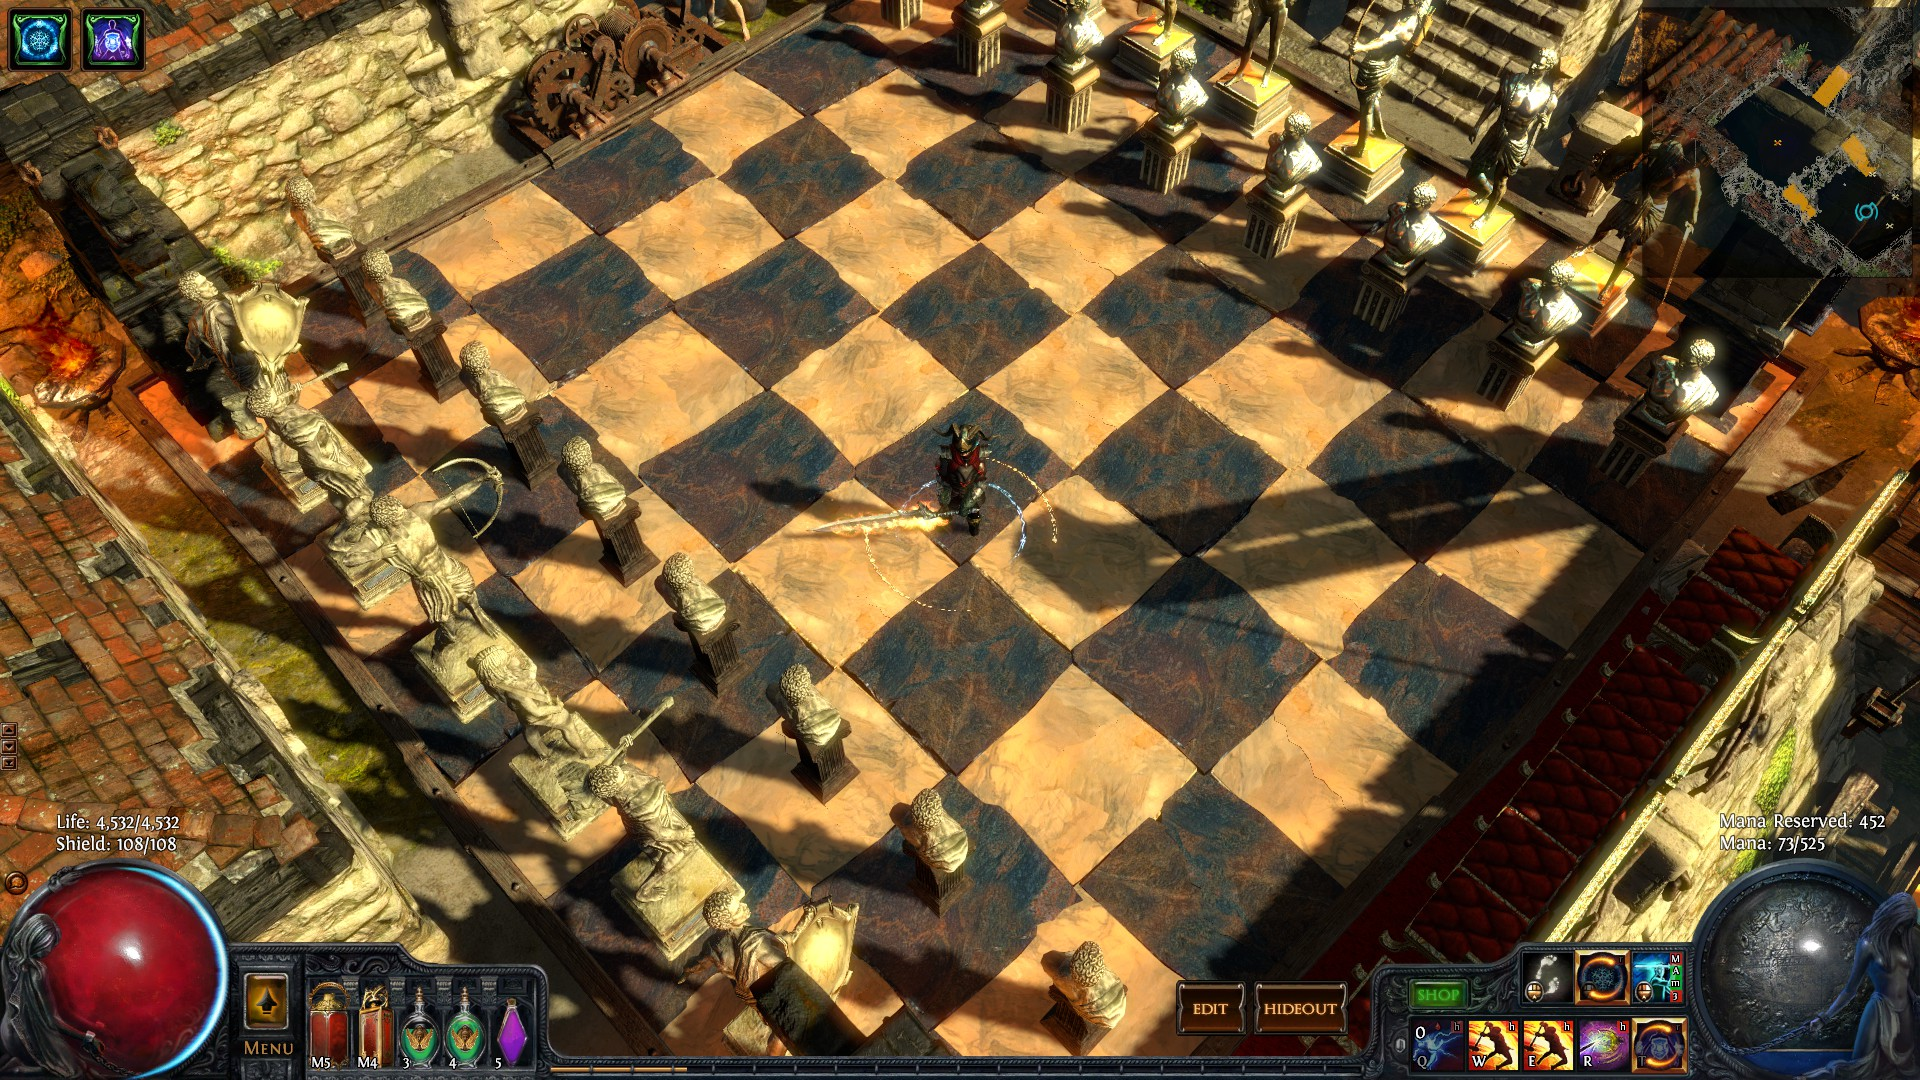 Hideout Official Path Of Exile Wiki Hope best path of exile poe hideout in the world! hideout official path of exile wiki